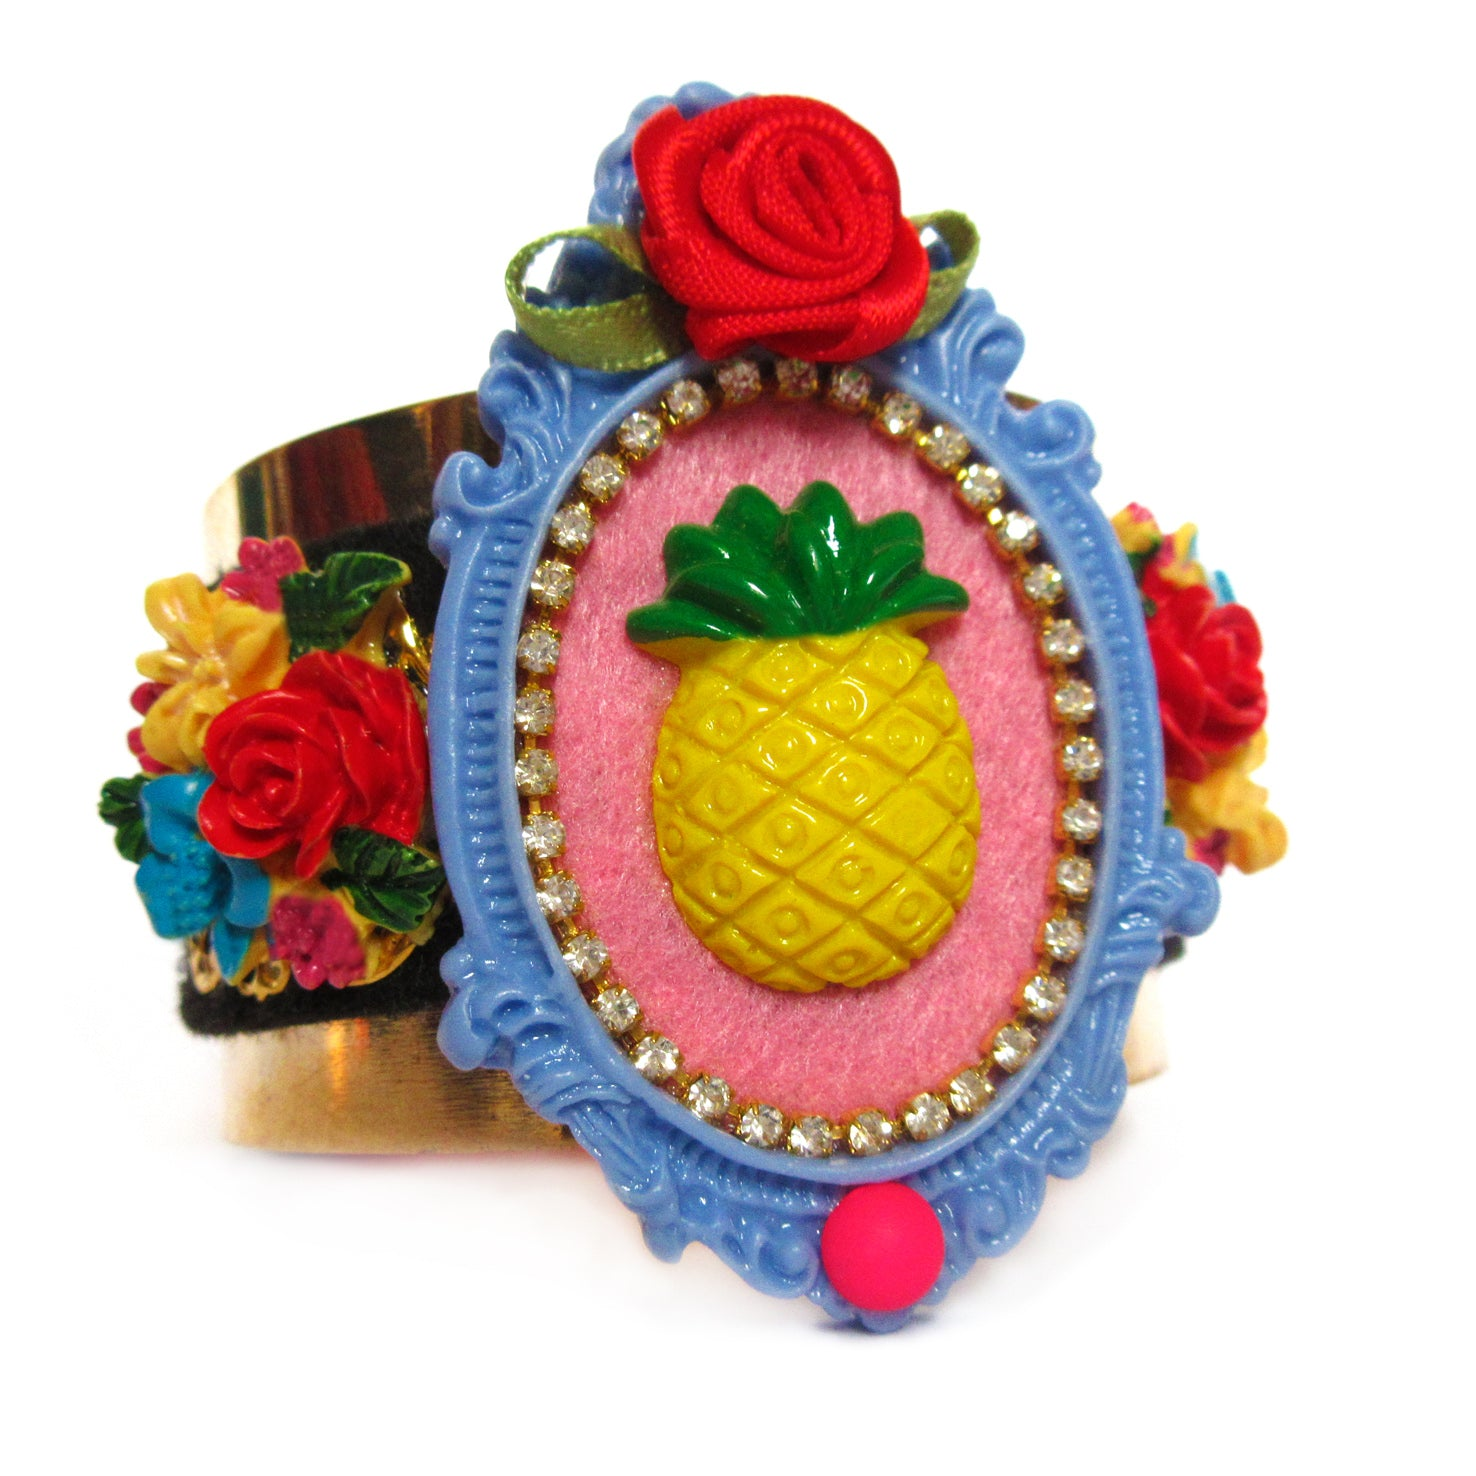 mouchkine jewelry pineapple bracelet, a haute couture jewel for a chic & elegant style, a colorful and creative look. Manchette ananas par Mouchkine, un bijou coloré, chic et original pour un look mode et couture.